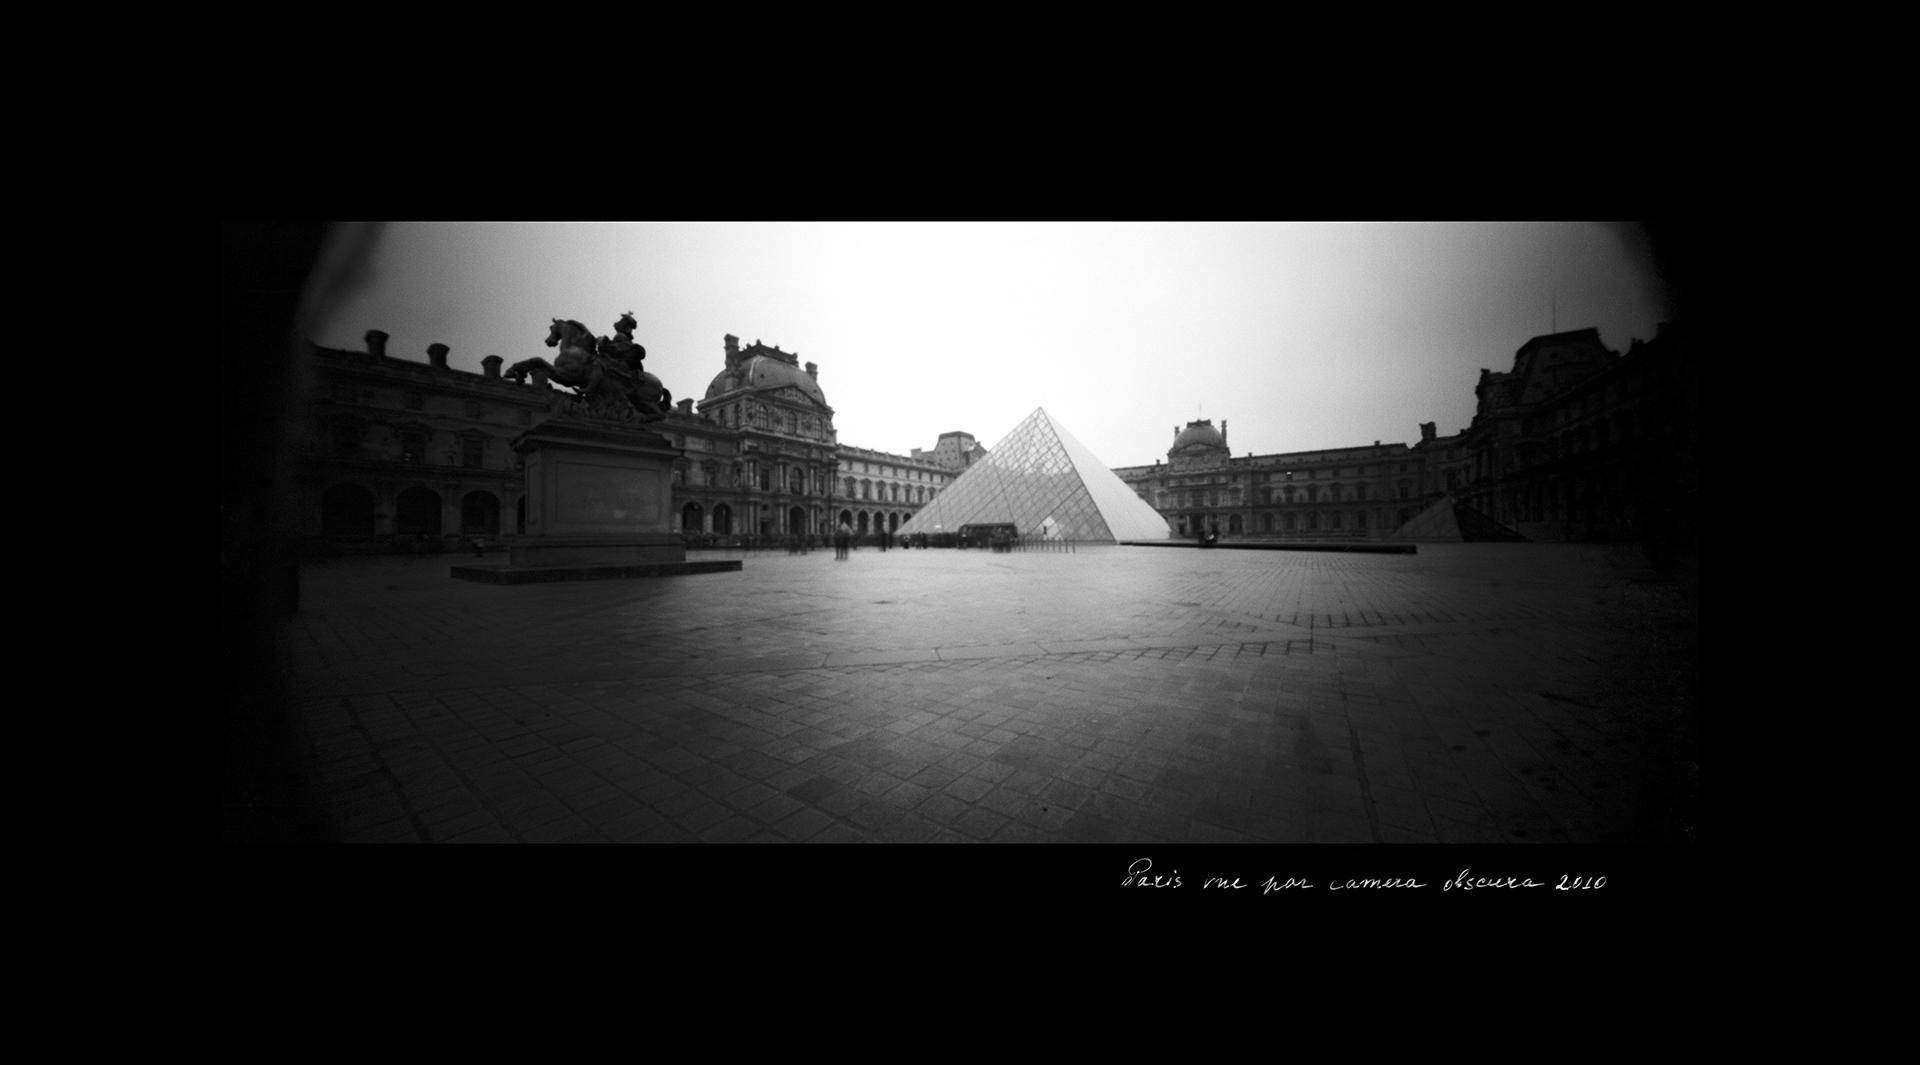 Paris vu par camera obscura13